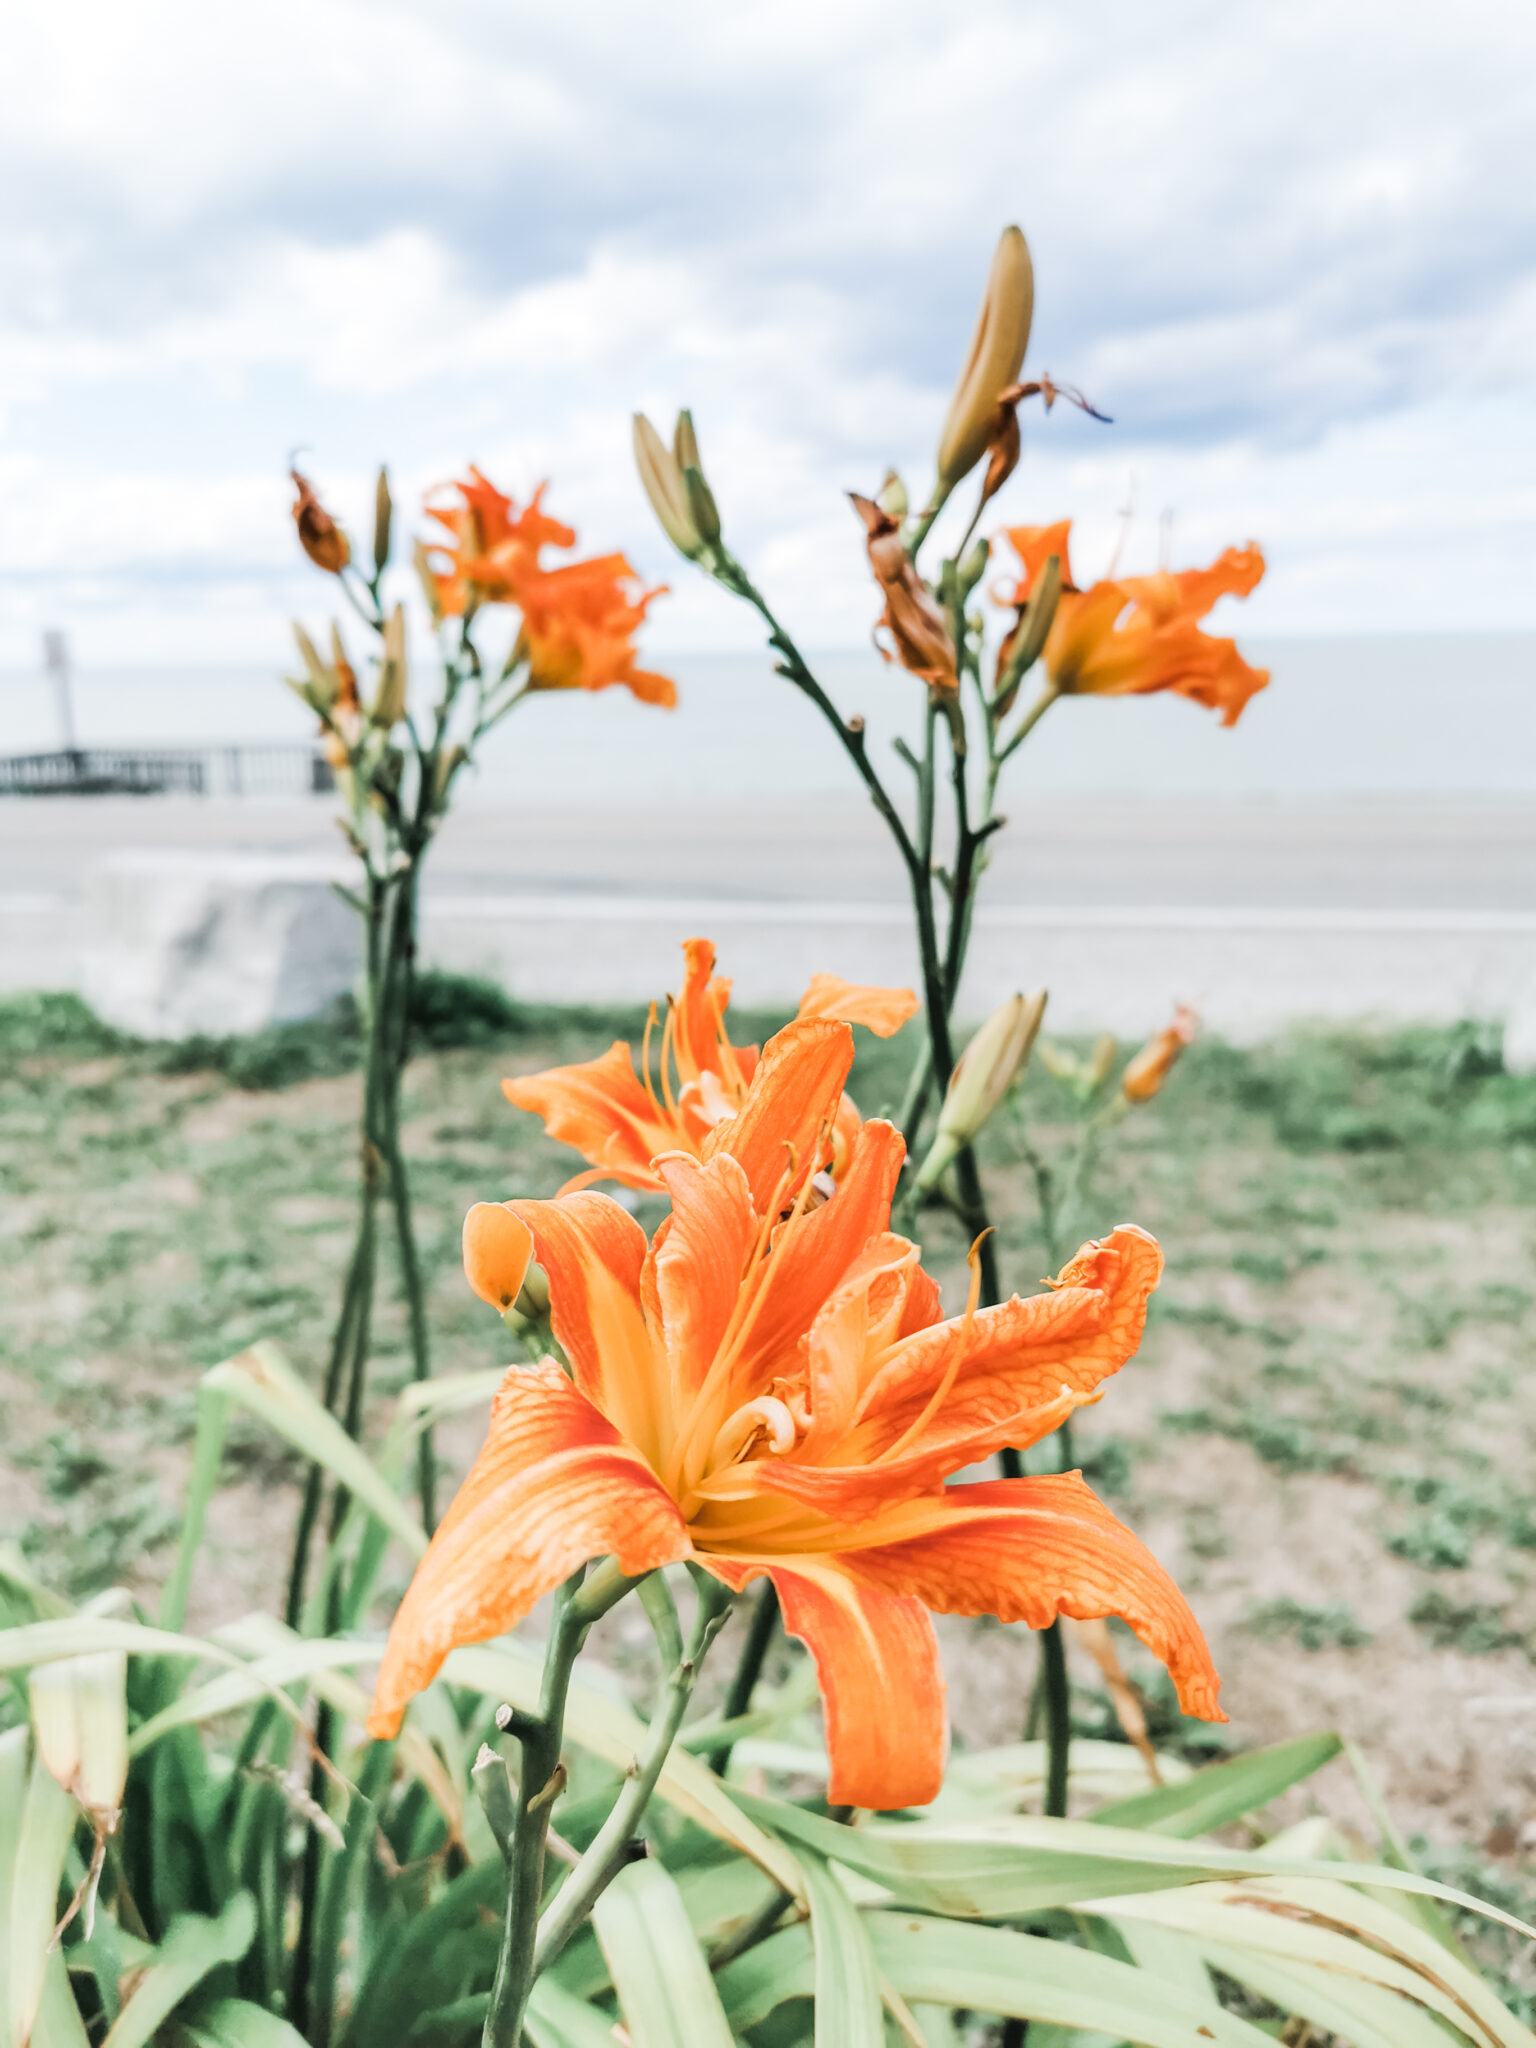 Lily growing next to Lake Huron. During our roadtrip with ProClip USA Jeep accessories.